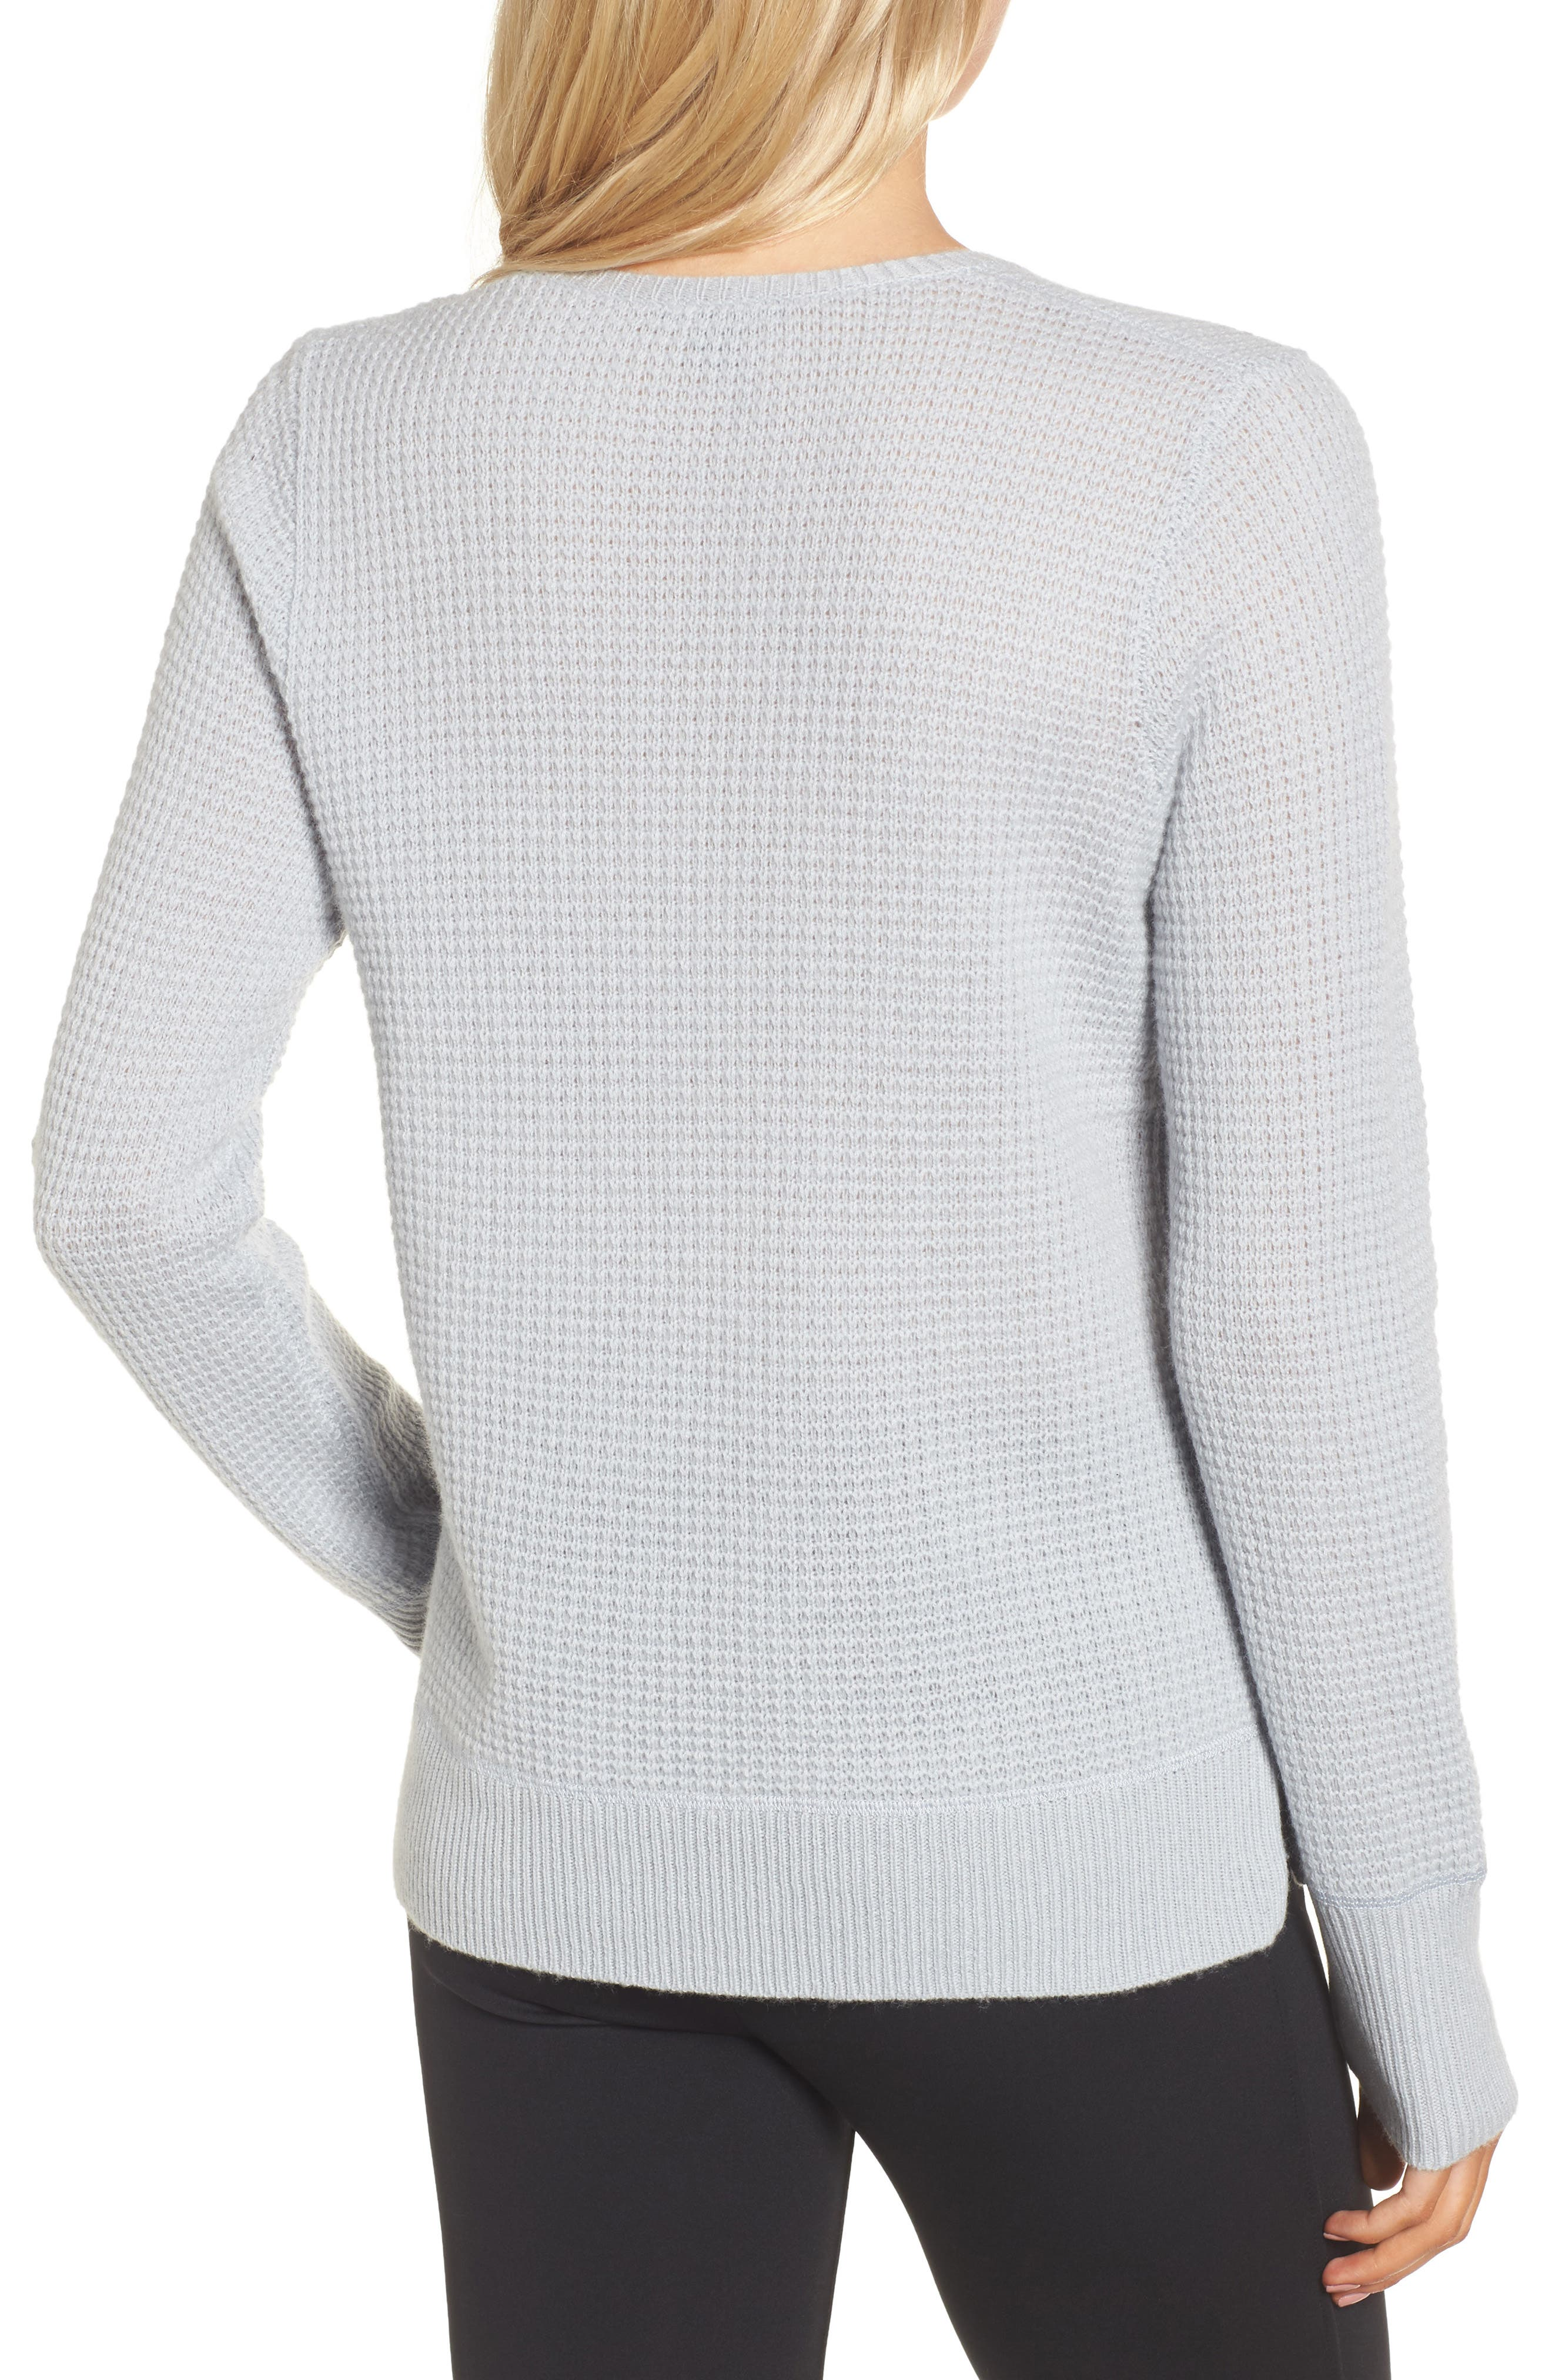 Cashmere Thermal Sweater,                             Alternate thumbnail 2, color,                             456